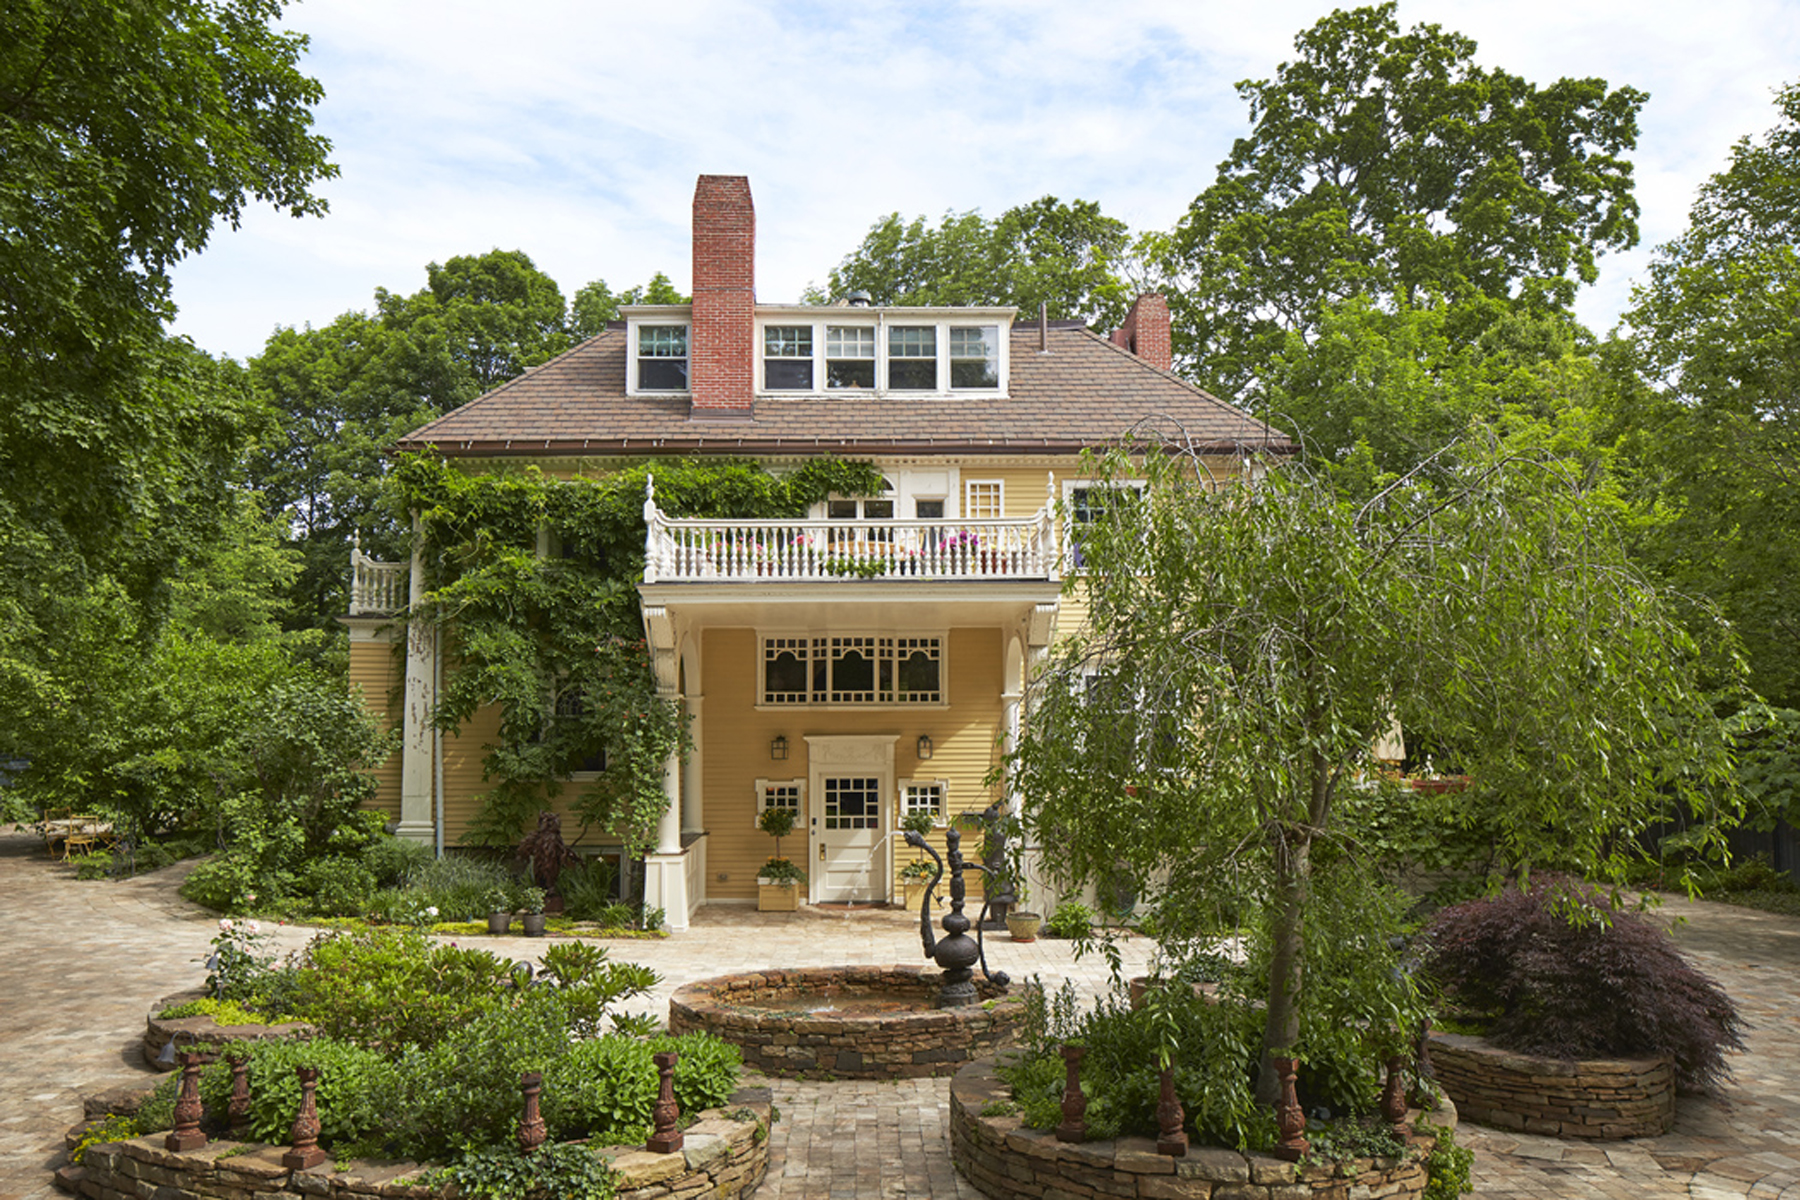 Single Family Home for Sale at 168 Brattle Street - Cambridge, MA Cambridge, Massachusetts, 02138 United States